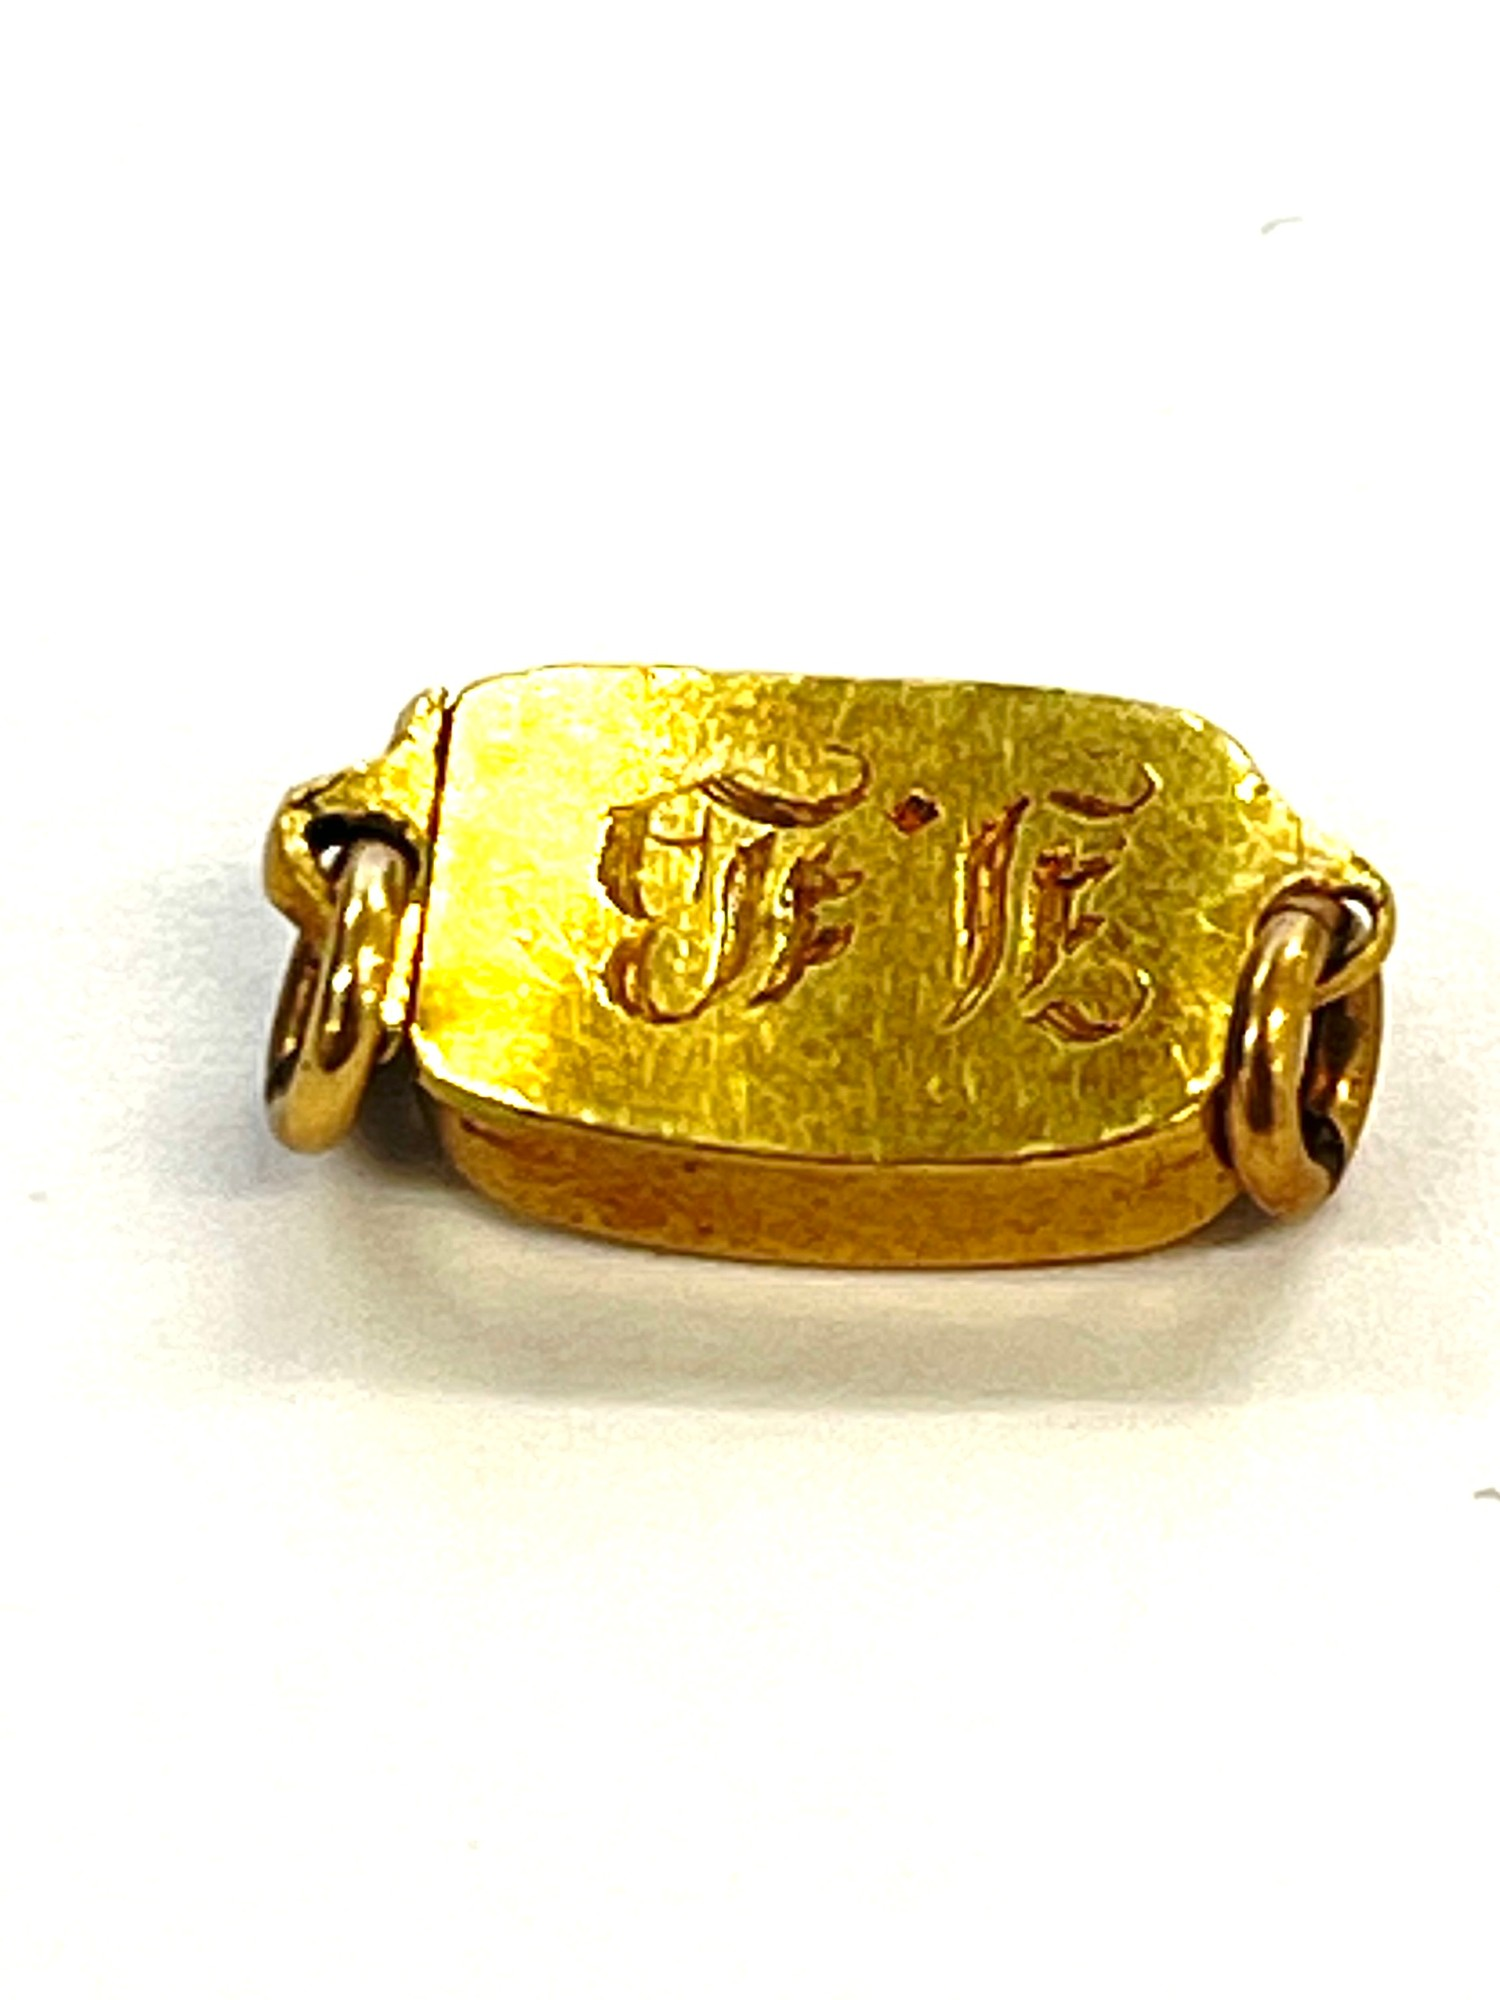 gold antique clasp with snake around fleur de lis etched - Image 2 of 2